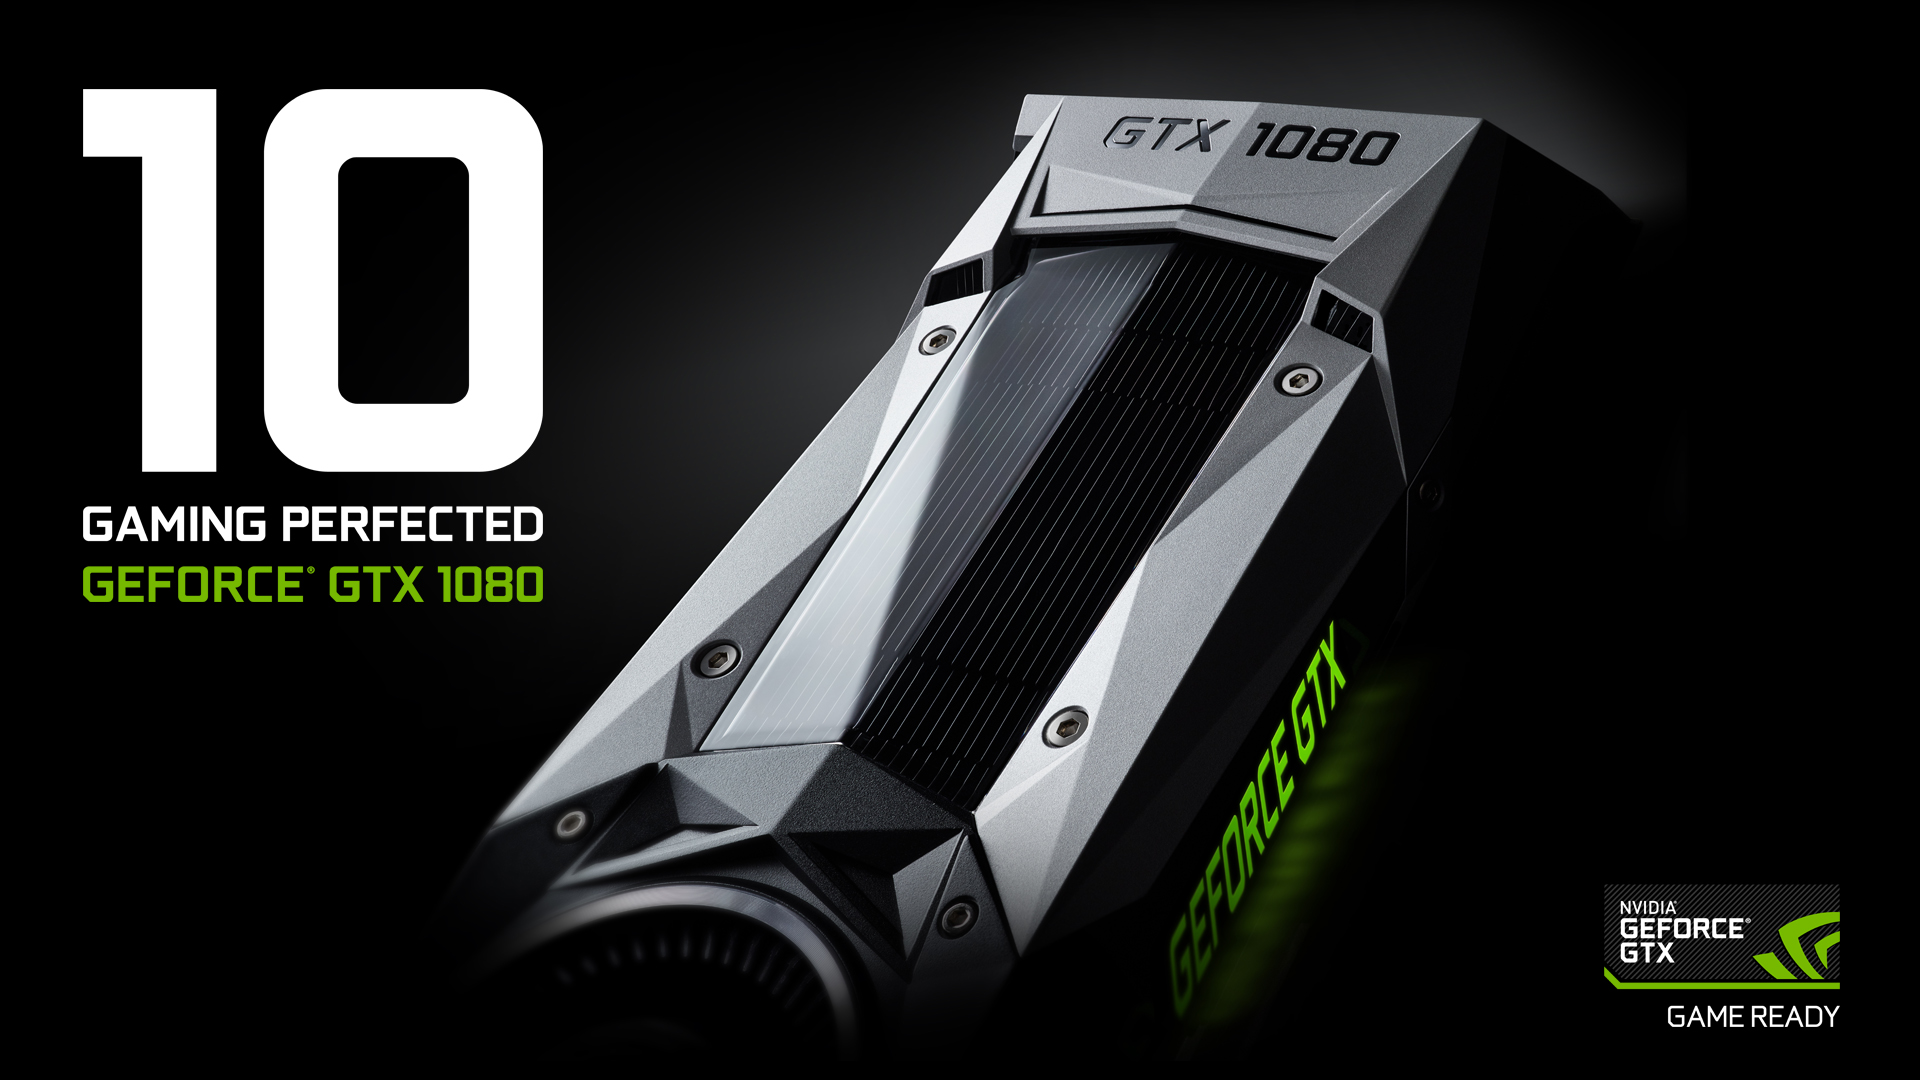 NVIDIA GTX 1070 Ti Alleged Specs Surface, A Bargain 1080 Without G5X